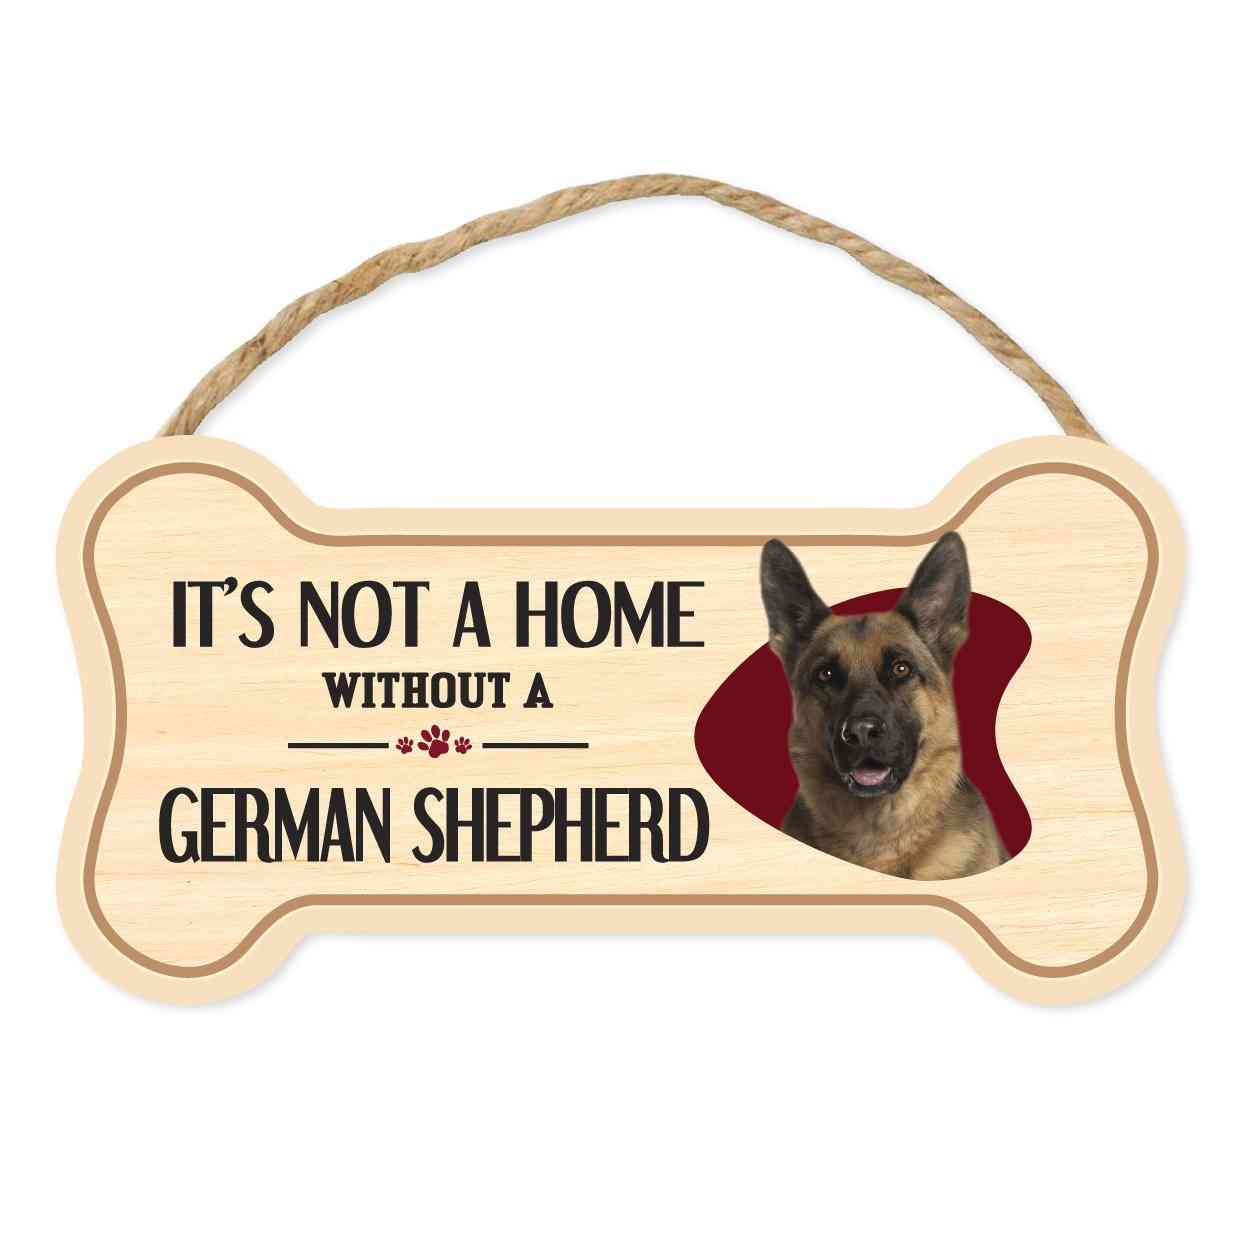 Sign, Wood, Dog Bone, It's Not A Home Without A German Shepherd, 10